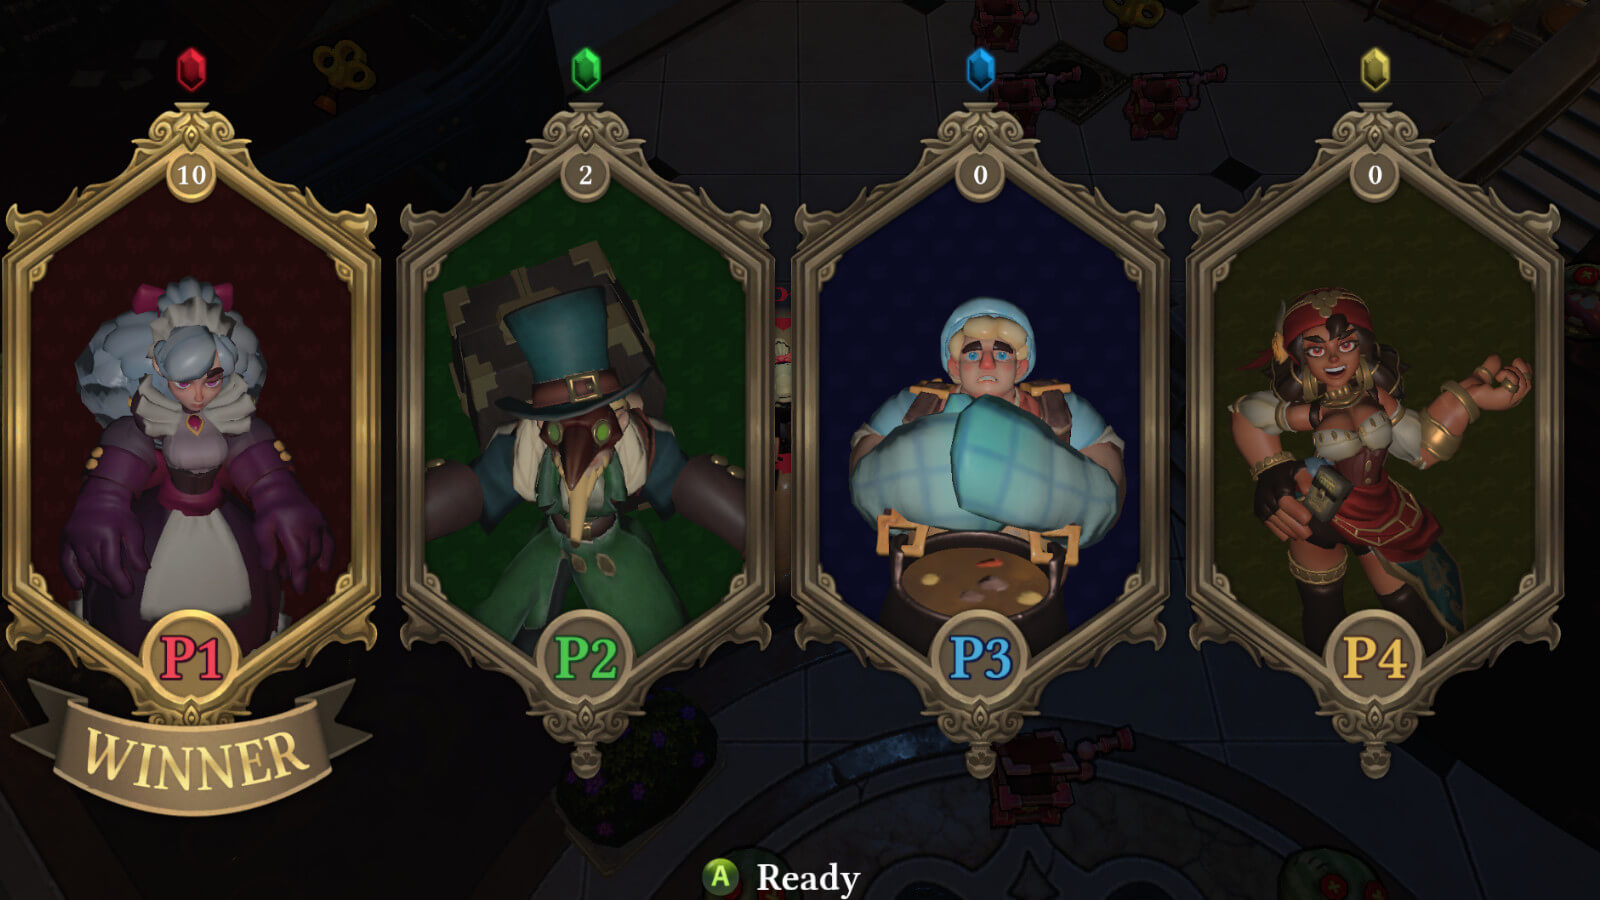 Character select screen featuring two female and two male characters in golden frames